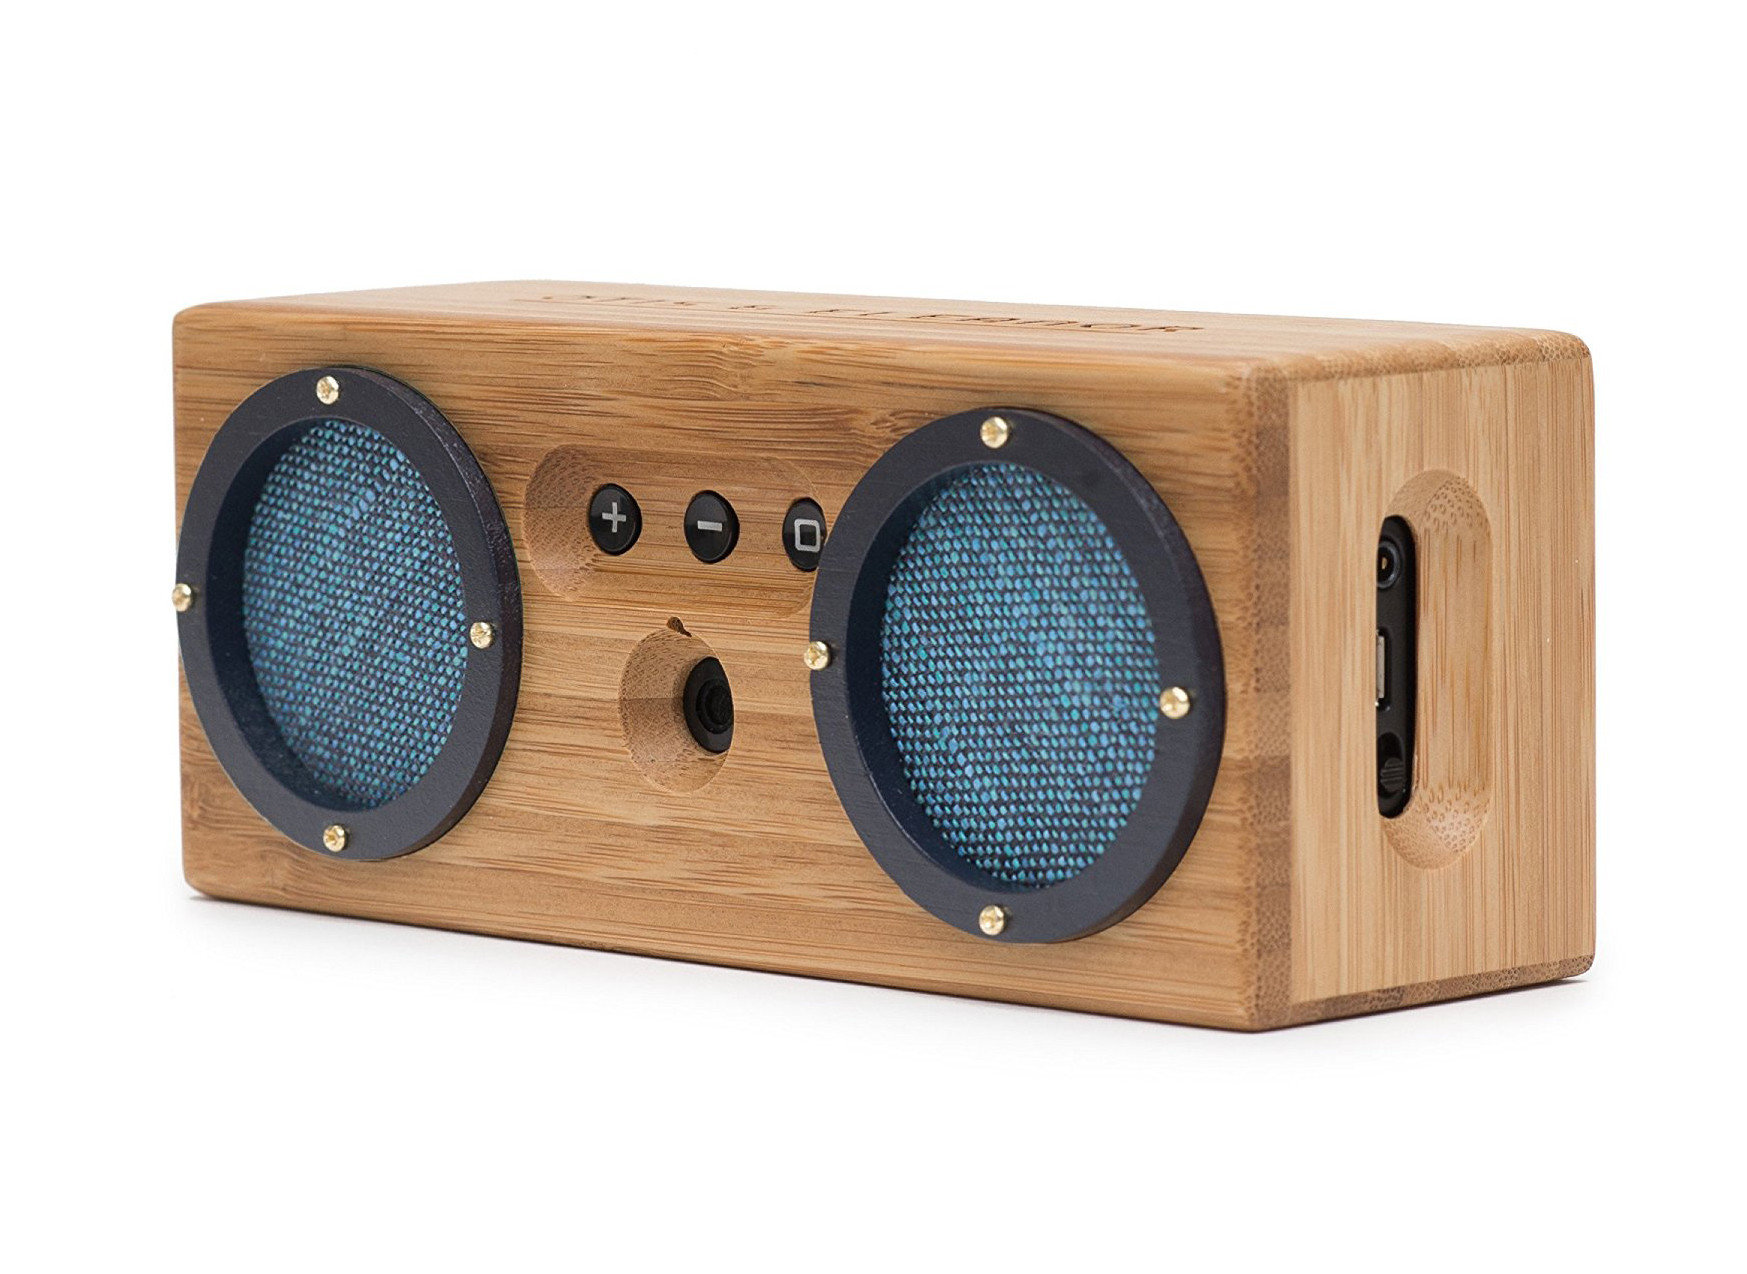 Gift Guides Travel Shop Travel Tech sound box wooden indoor audio equipment audio computer speaker wood loudspeaker electronic instrument product design technology radio sound speaker product subwoofer